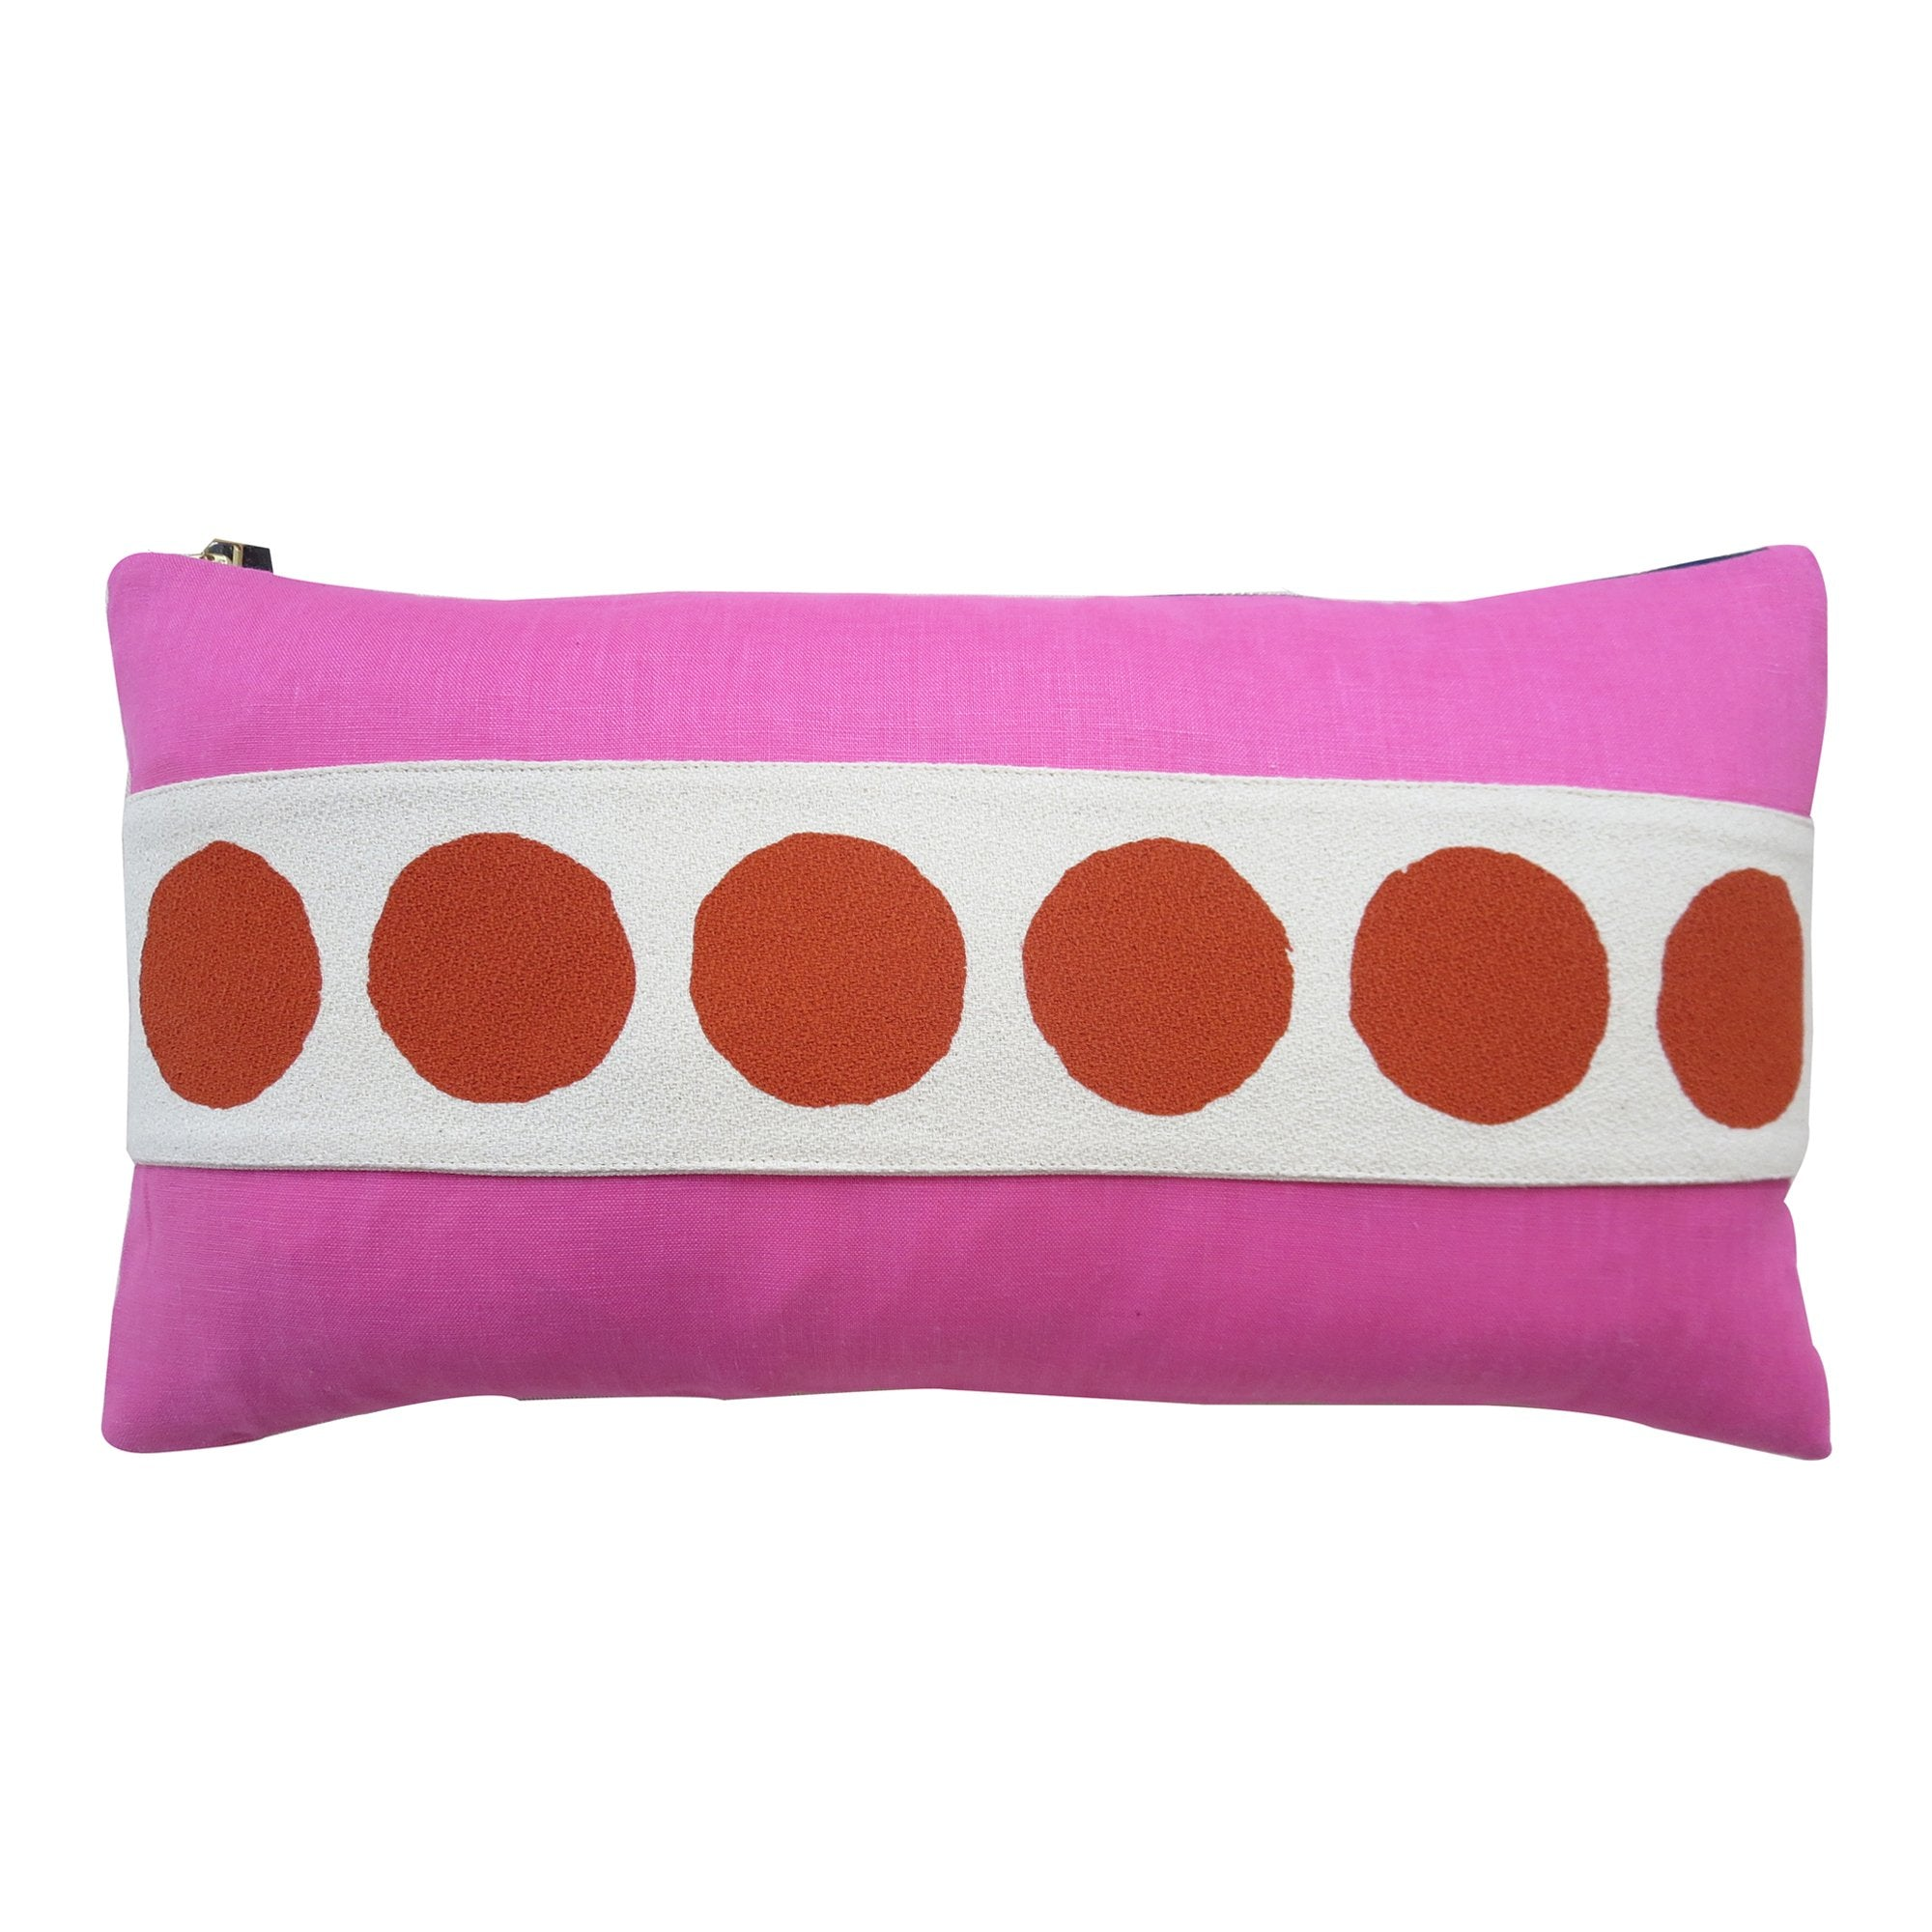 CIRCLE BAND LINEN PILLOW COVER IN RED